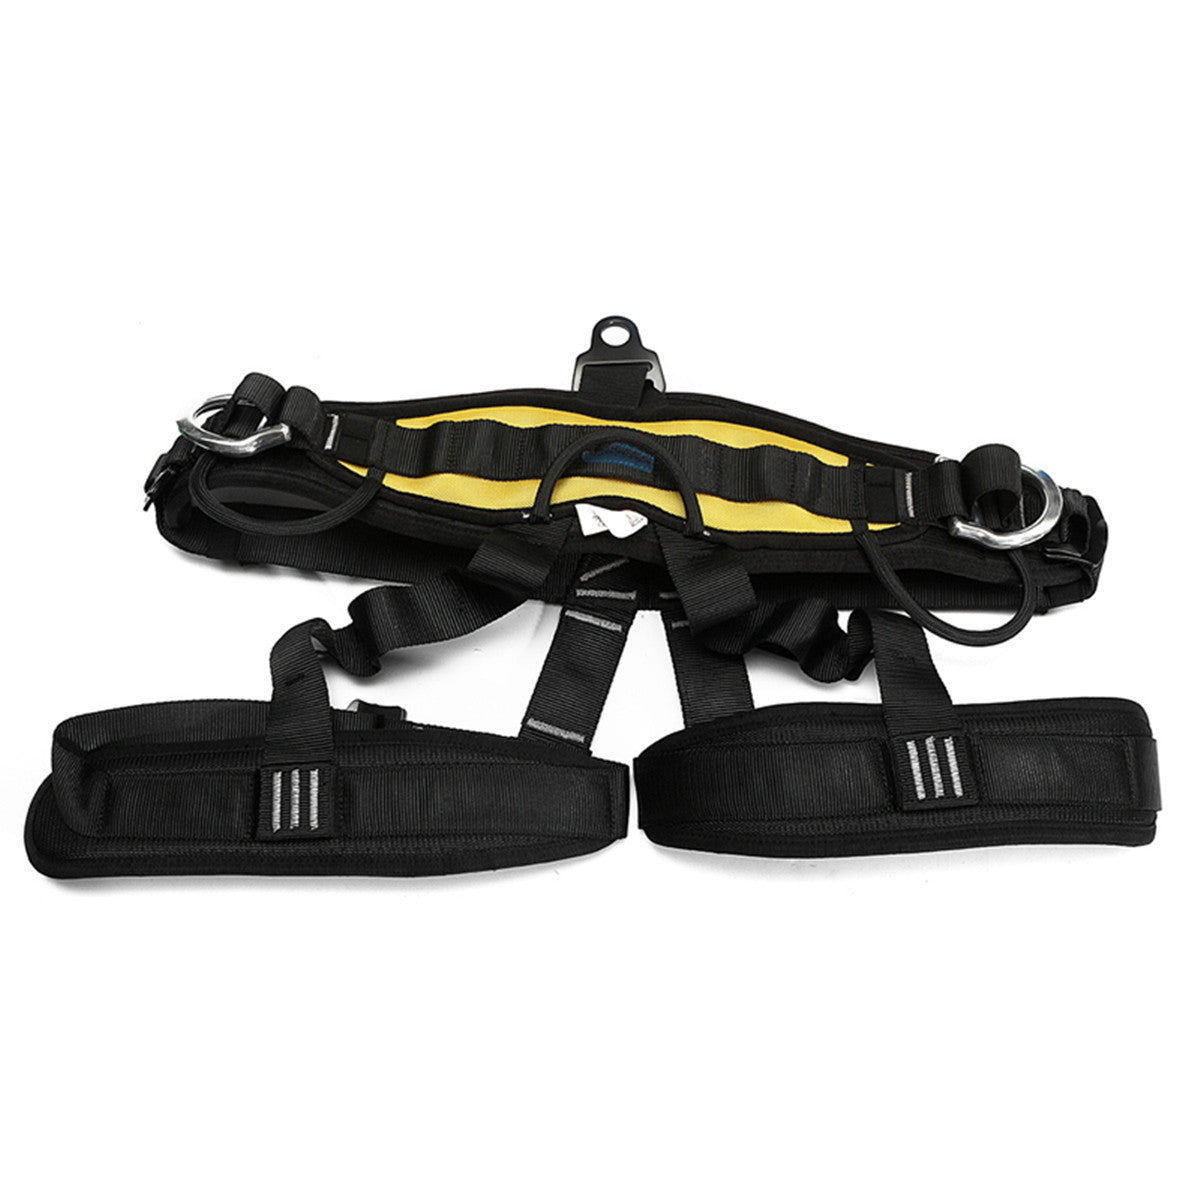 Pro Tree Carving Fall Protection Rock Climbing Equip Gear Rappelling Harness